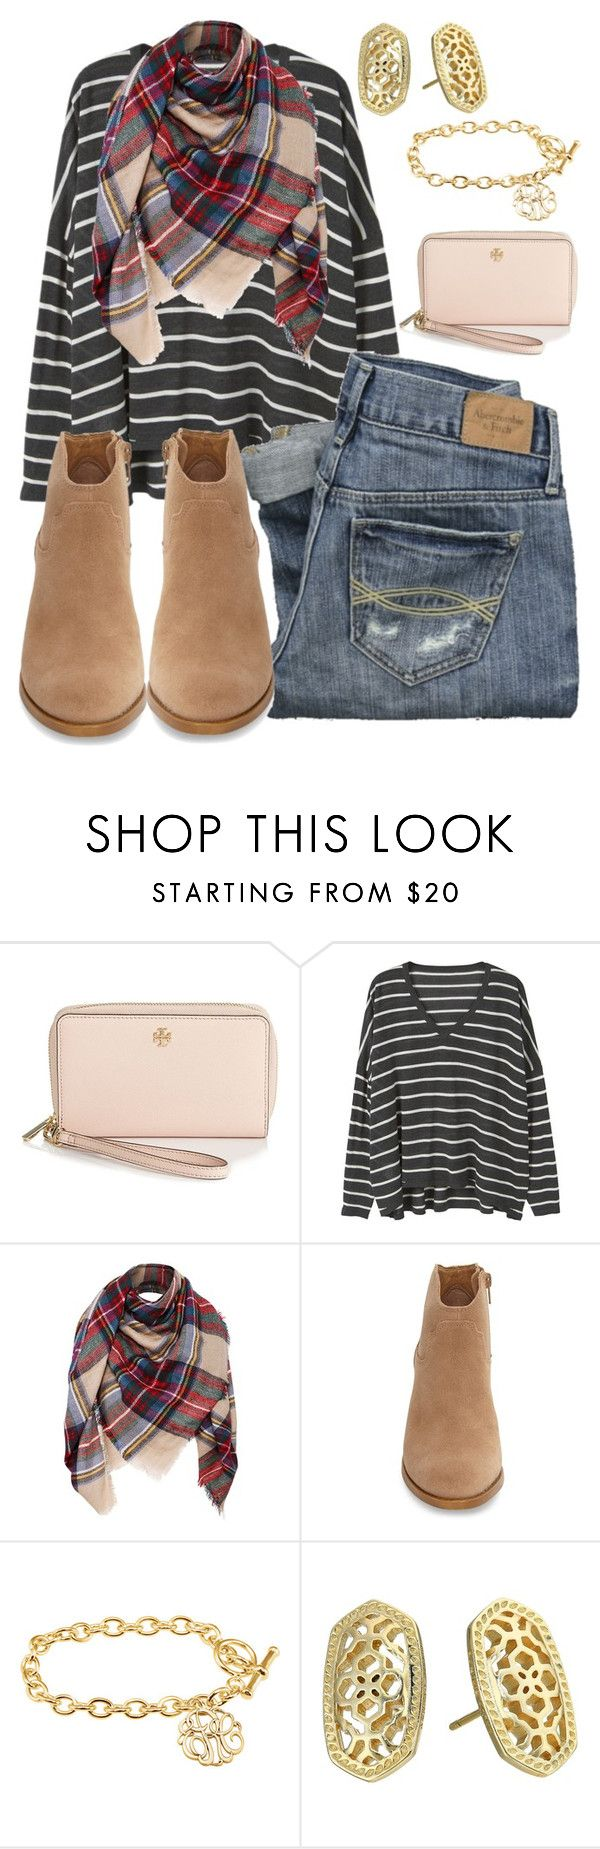 """When you're on your knees and answers seem so far away, you're not alone; stop holding on and just be held."" by swwbama ❤ liked on Polyvore featuring Tory Burch, MANGO, Lucky Brand, Abercrombie & Fitch and Kendra Scott"